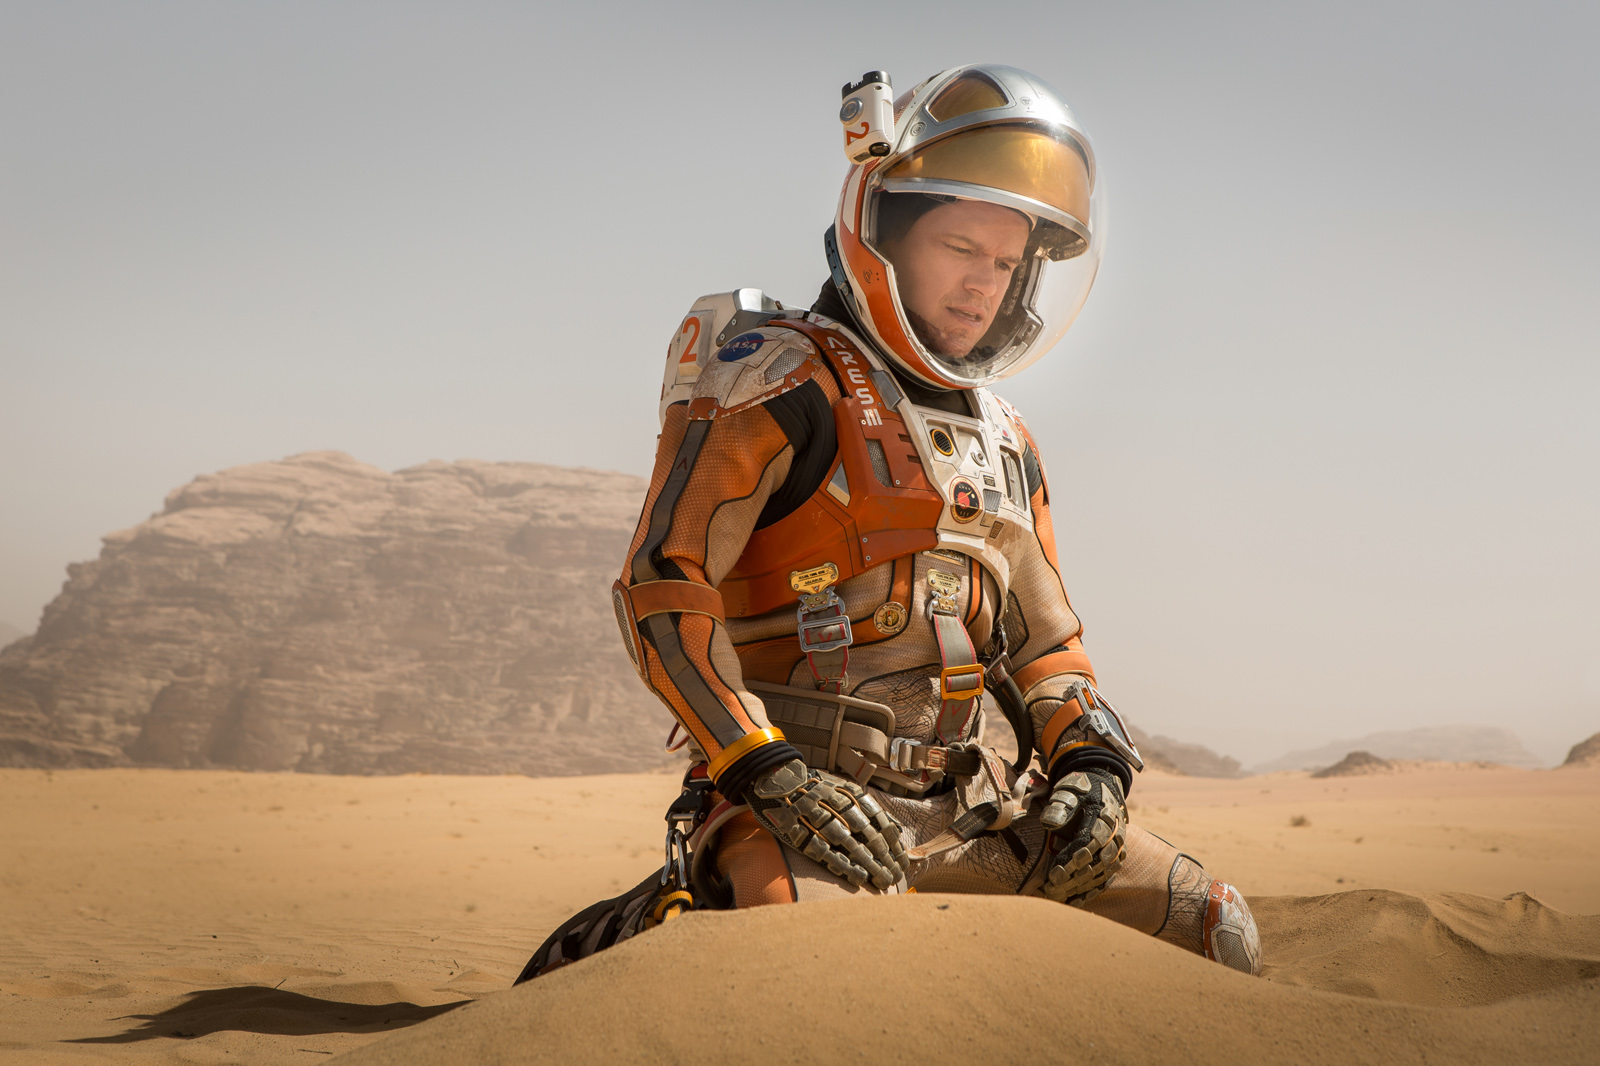 SEUL SUR MARS - The Martian Matt Damon Image 6 Ridley Scott - Go with the Blog